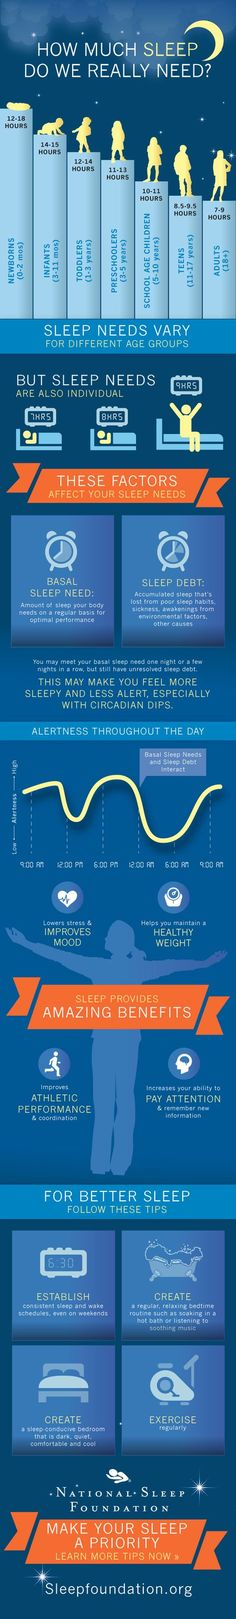 How Much Sleep do we Really Need? Are you getting enough? #infographic